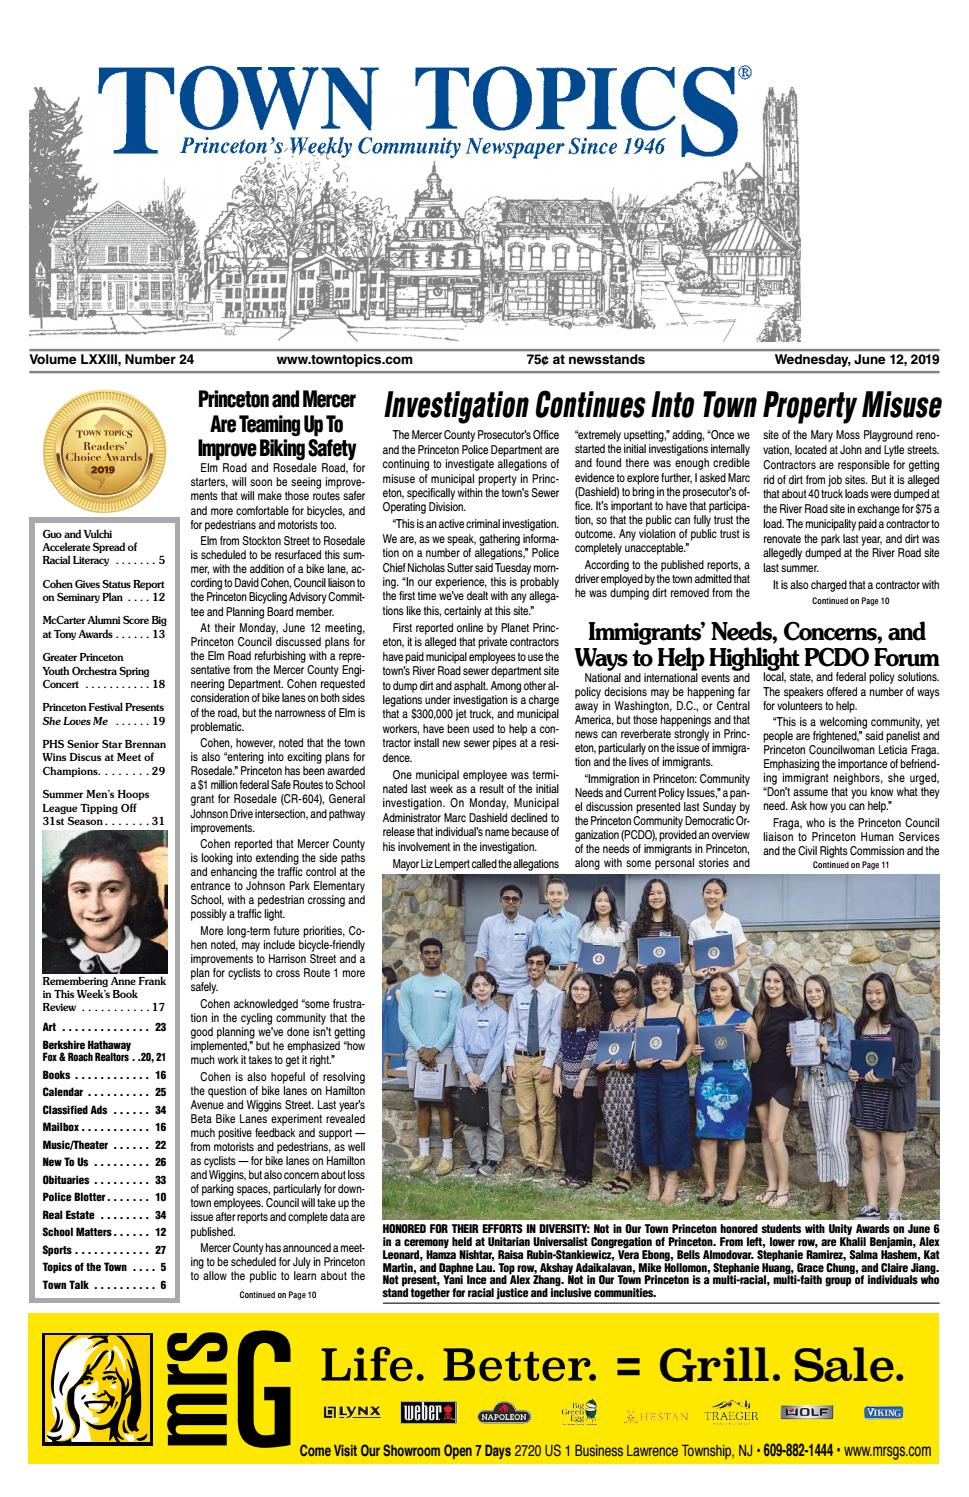 Town Topics Newspaper June 12, 2019 by Witherspoon Media Group - issuu